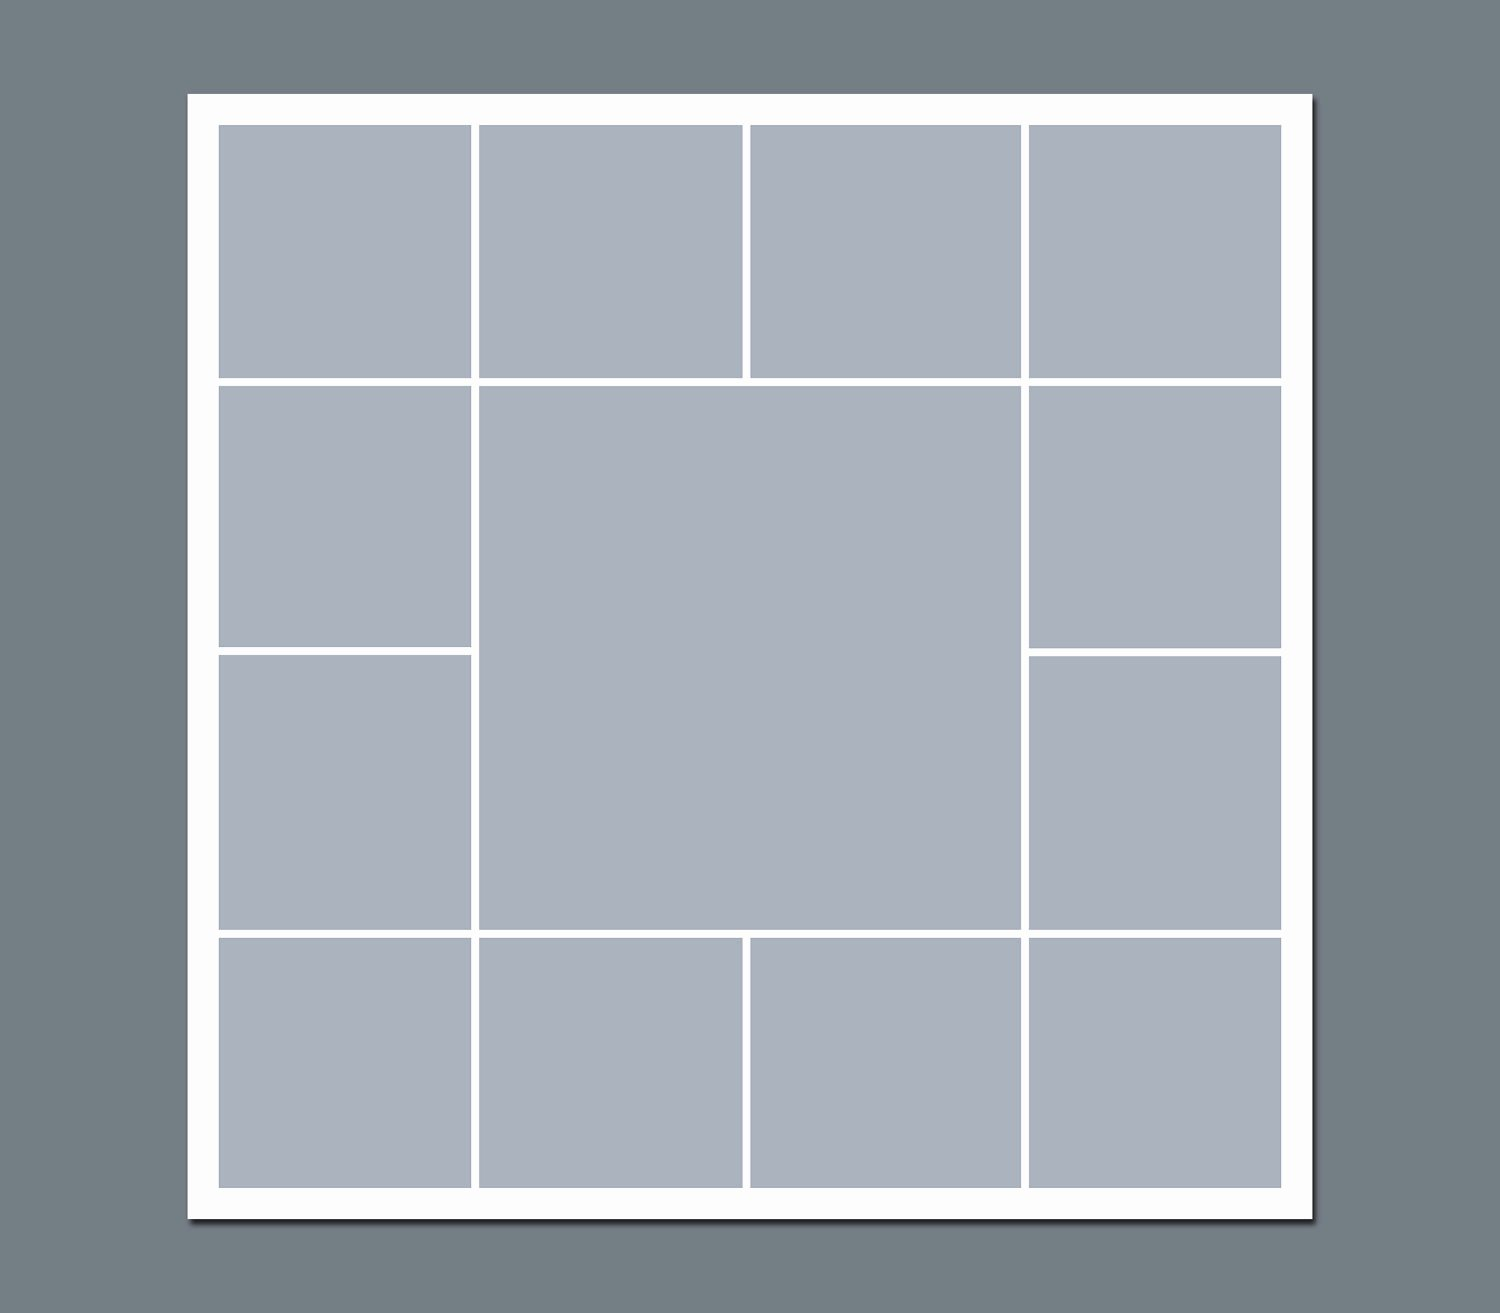 Free Photoshop Storyboard Templates Inspirational Instant Download Storyboard Graphers Template